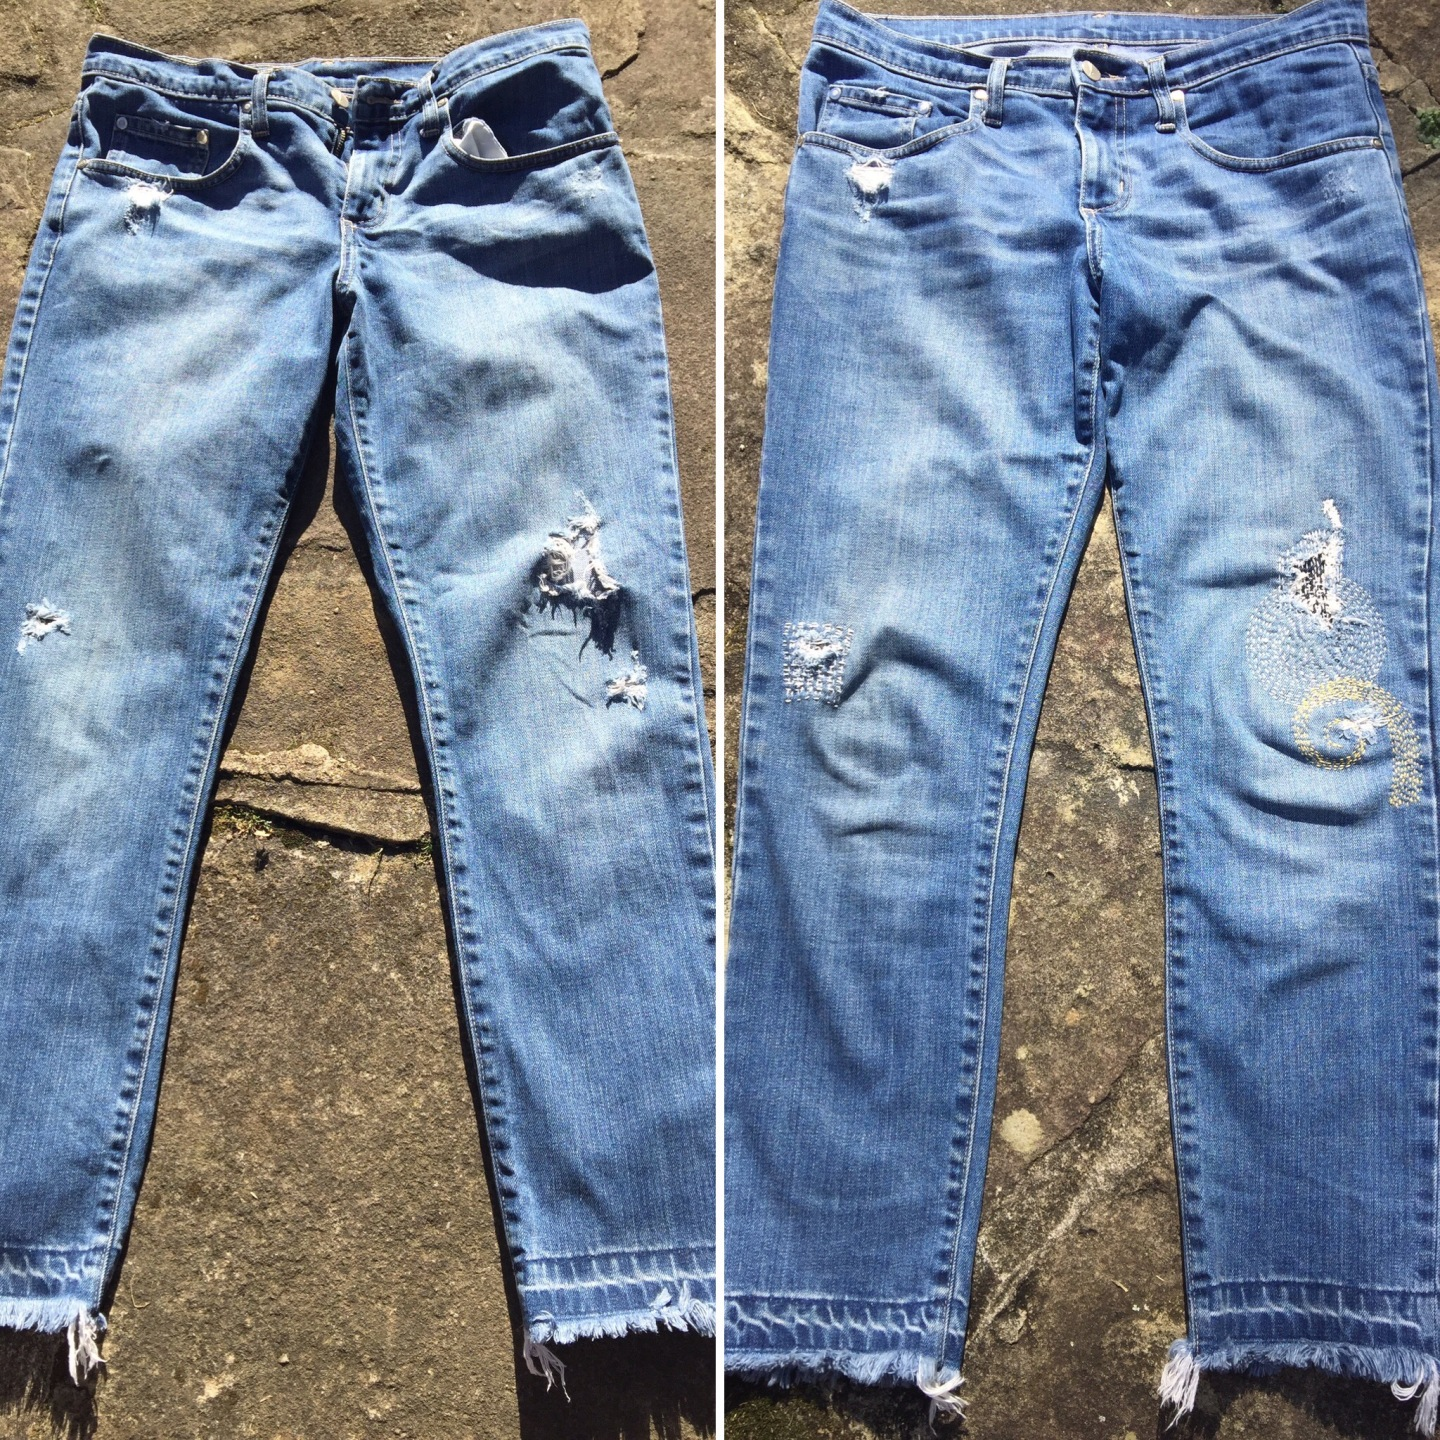 Jeans before and after boro